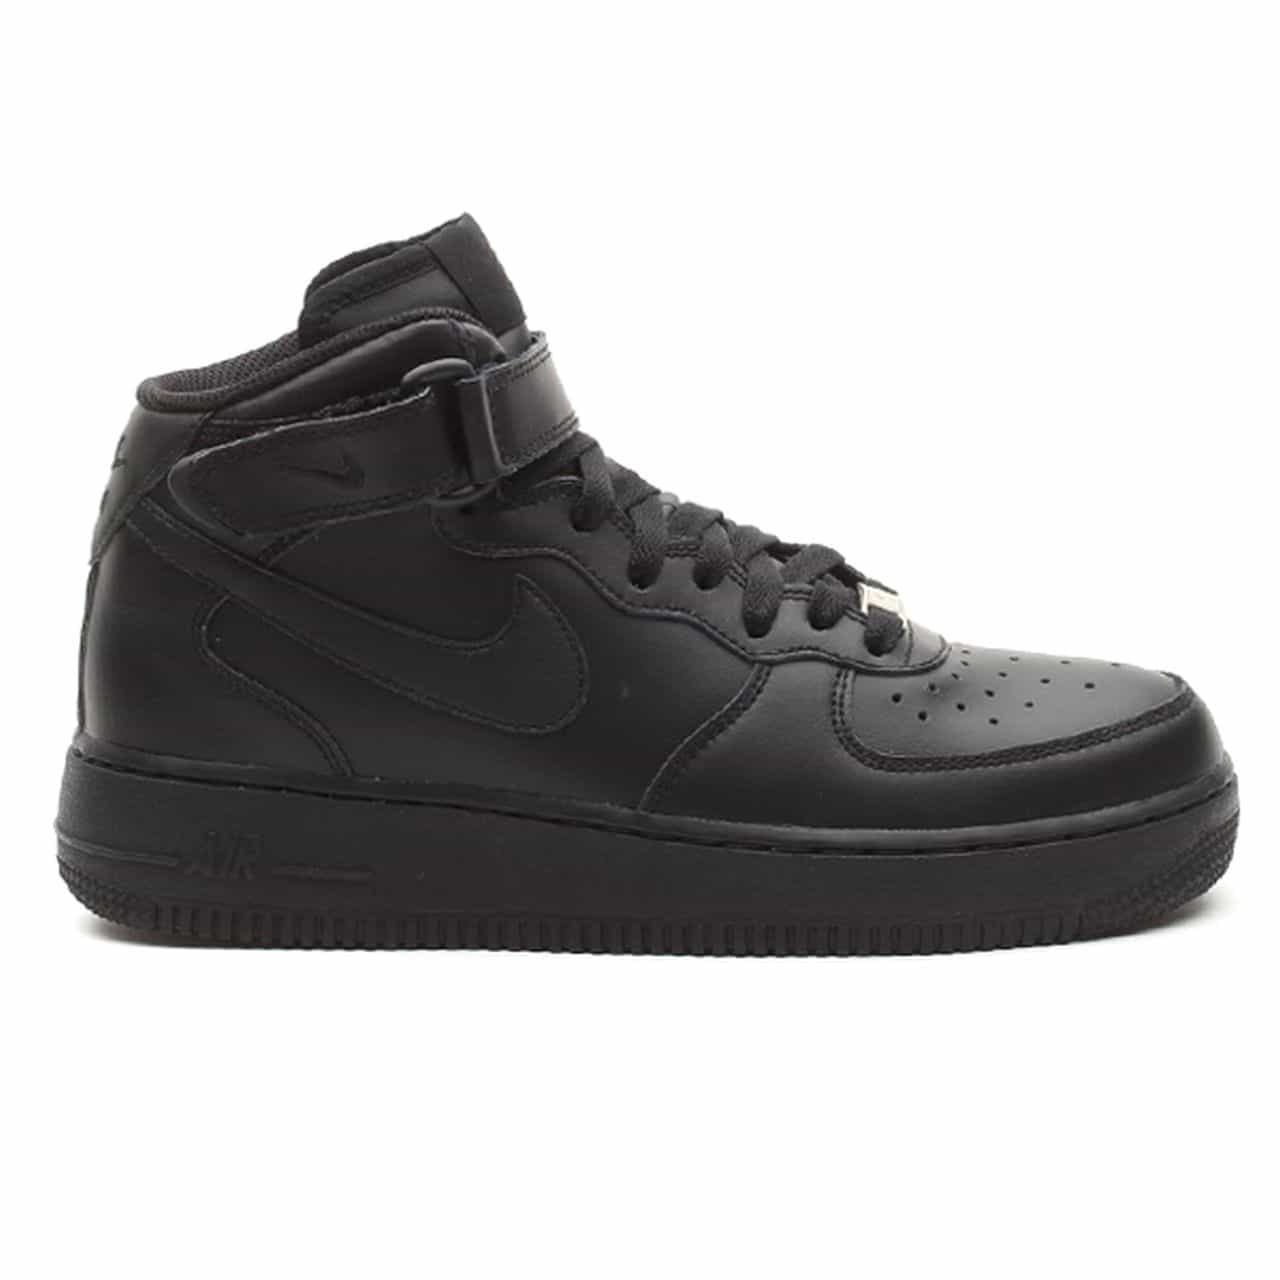 ADIDASI ORIGINALI NIKE AIR FORCE 1 MID (GS) - 314195 004